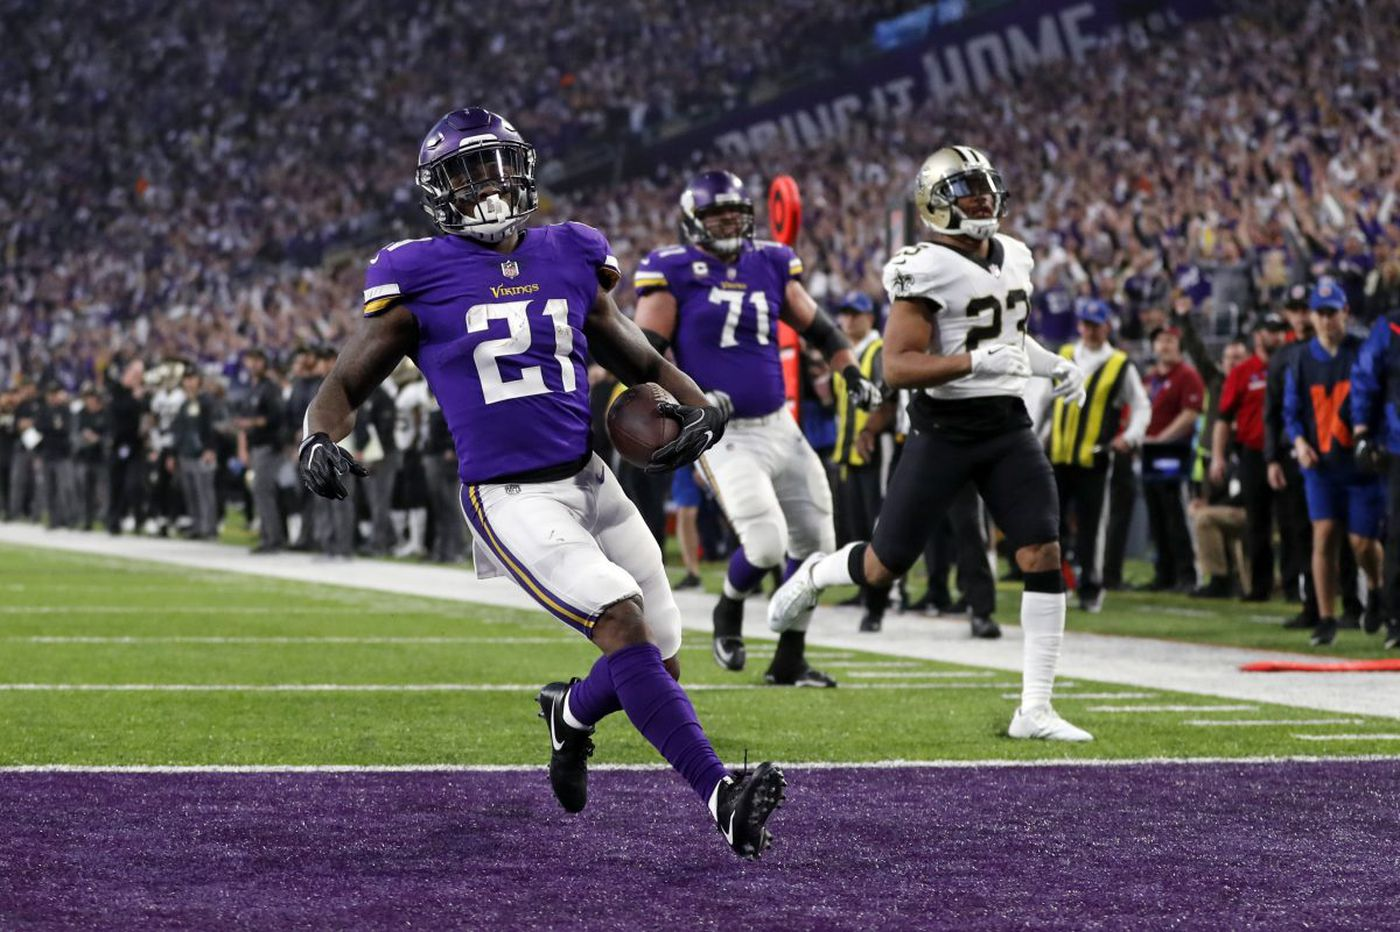 Eagles will face Vikings in NFC championship